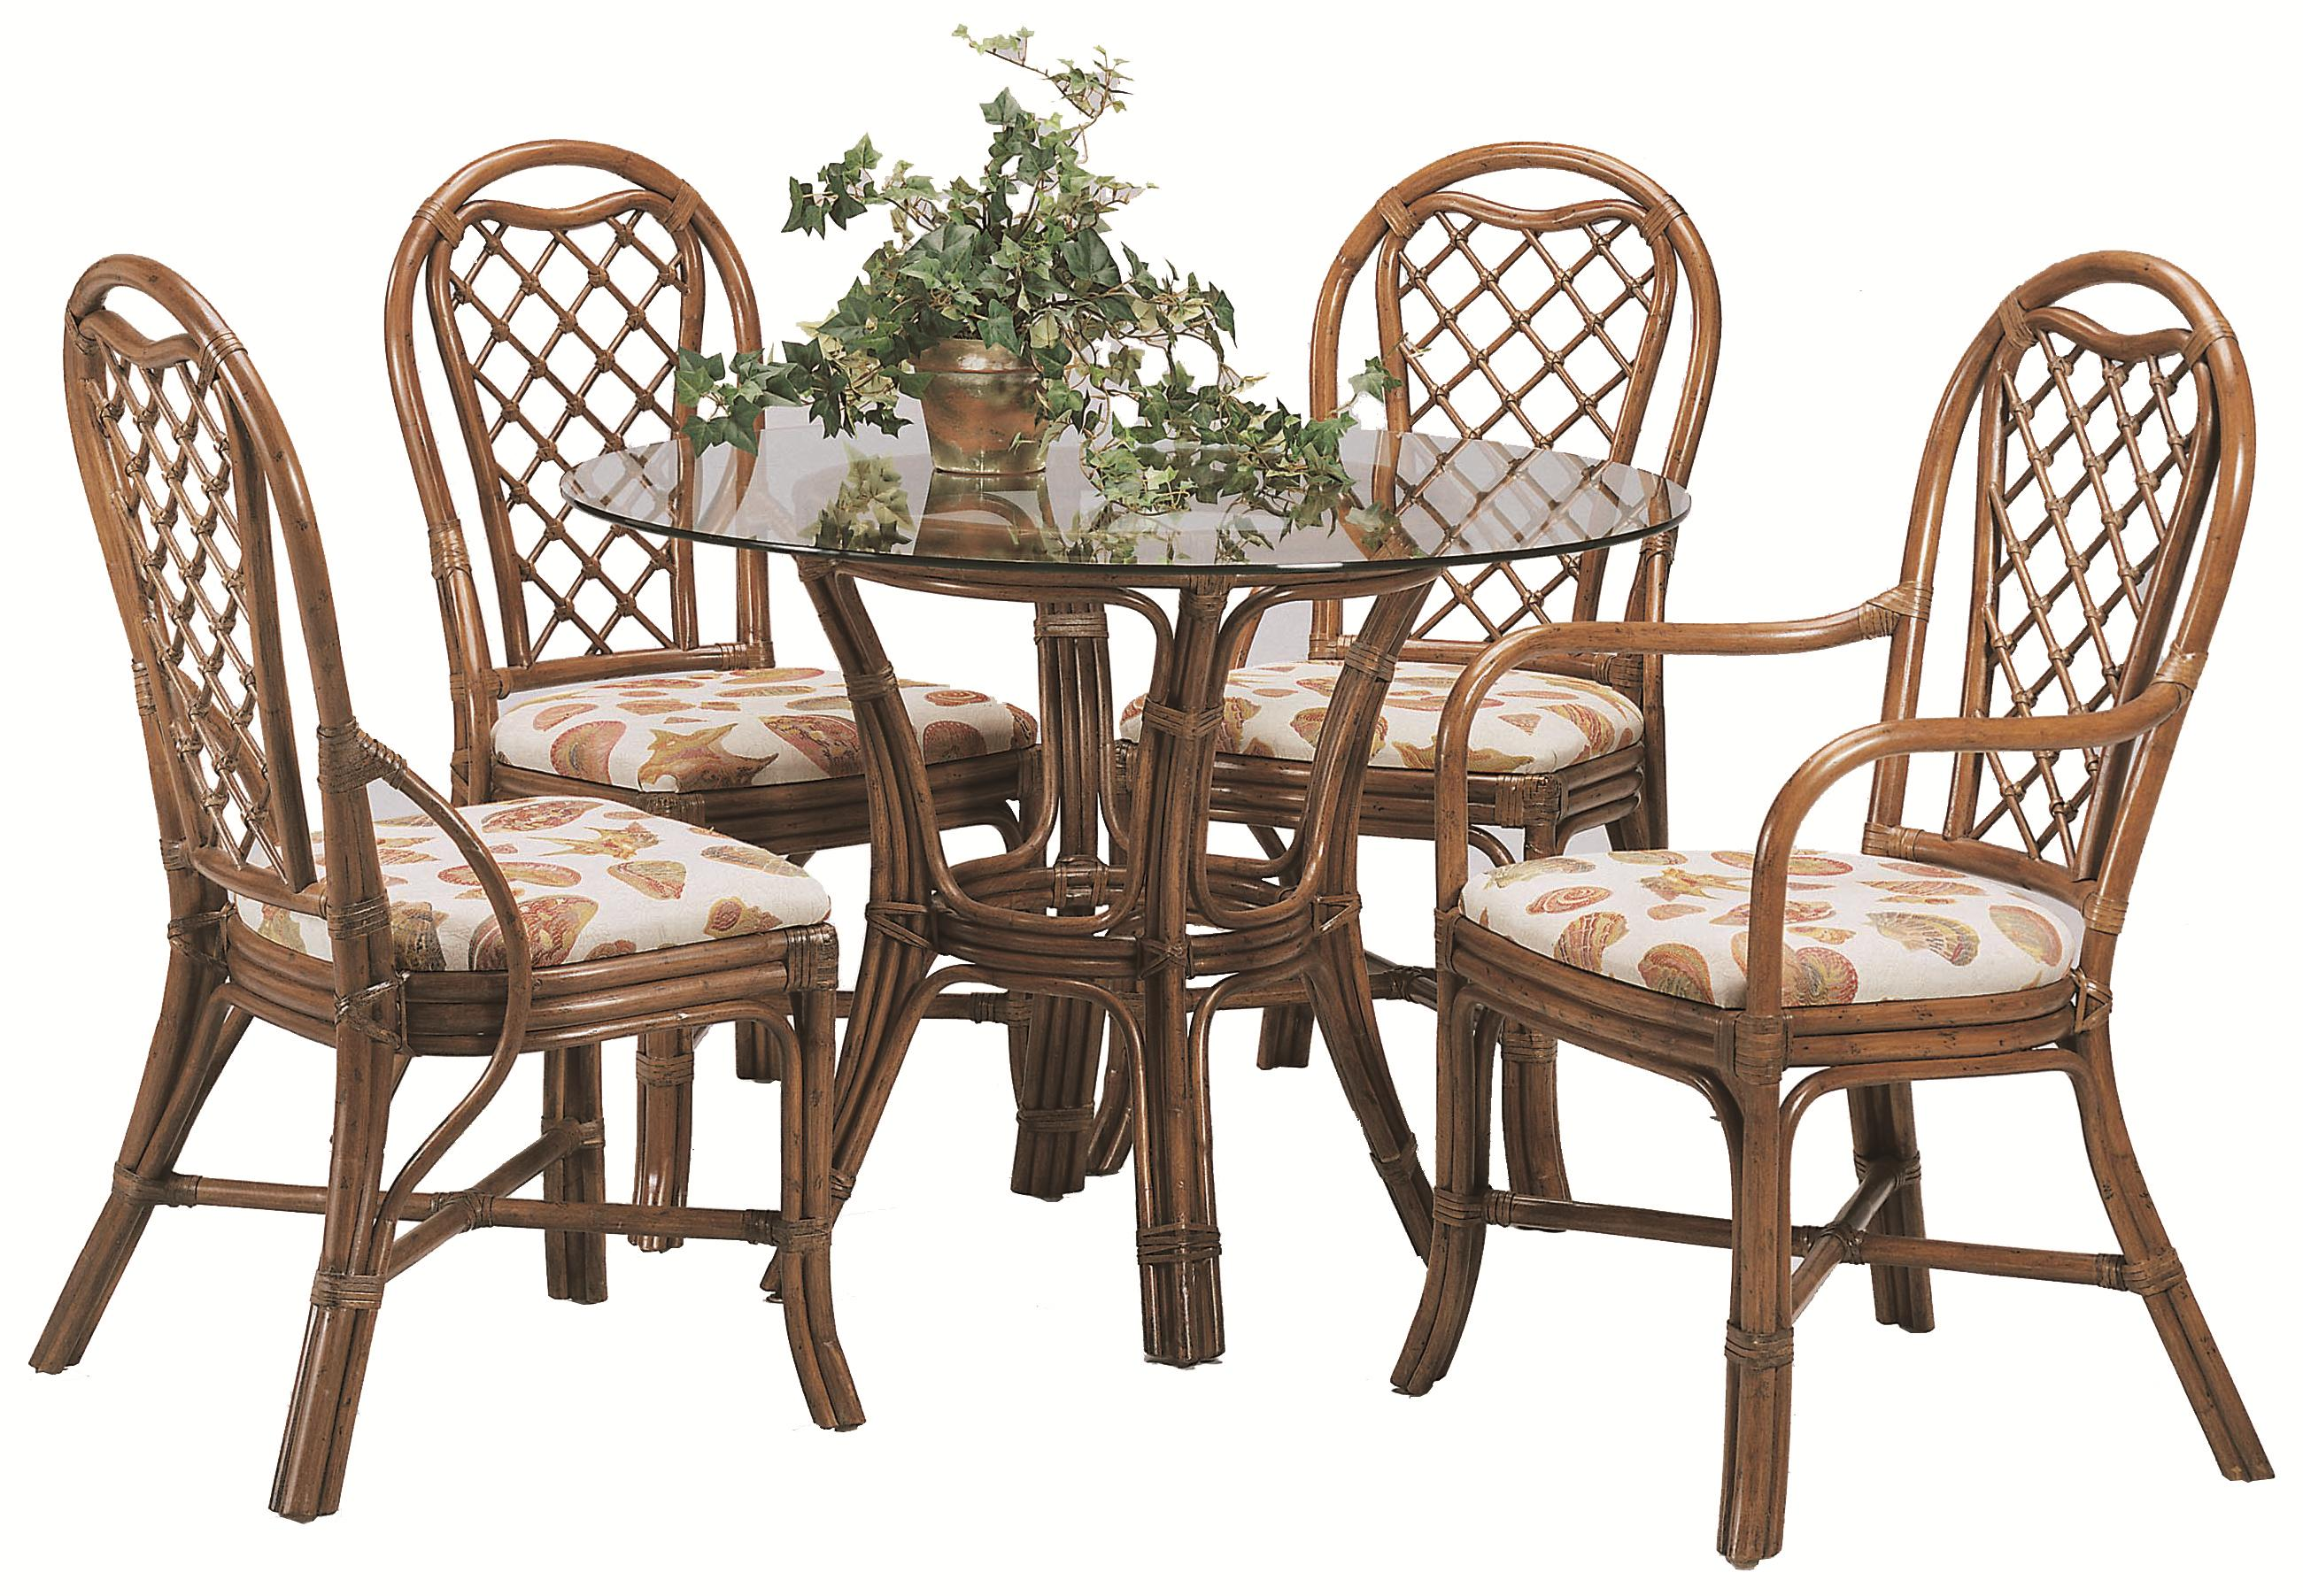 979 Five Piece Dining Set by Braxton Culler at Esprit Decor Home Furnishings